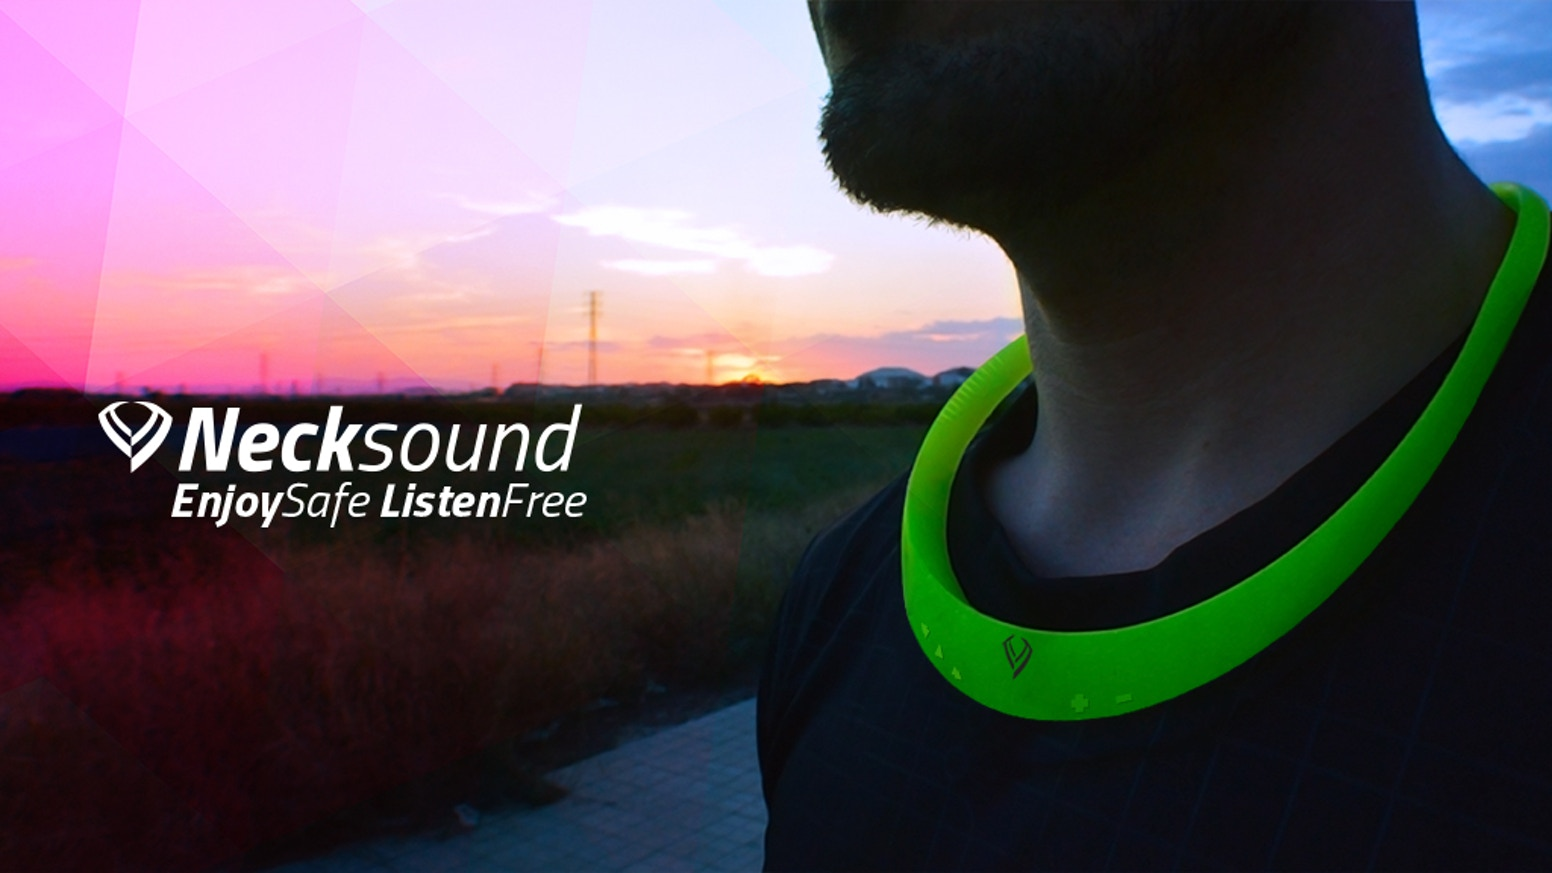 Necksound: Smart wireless necklace wearable music device by